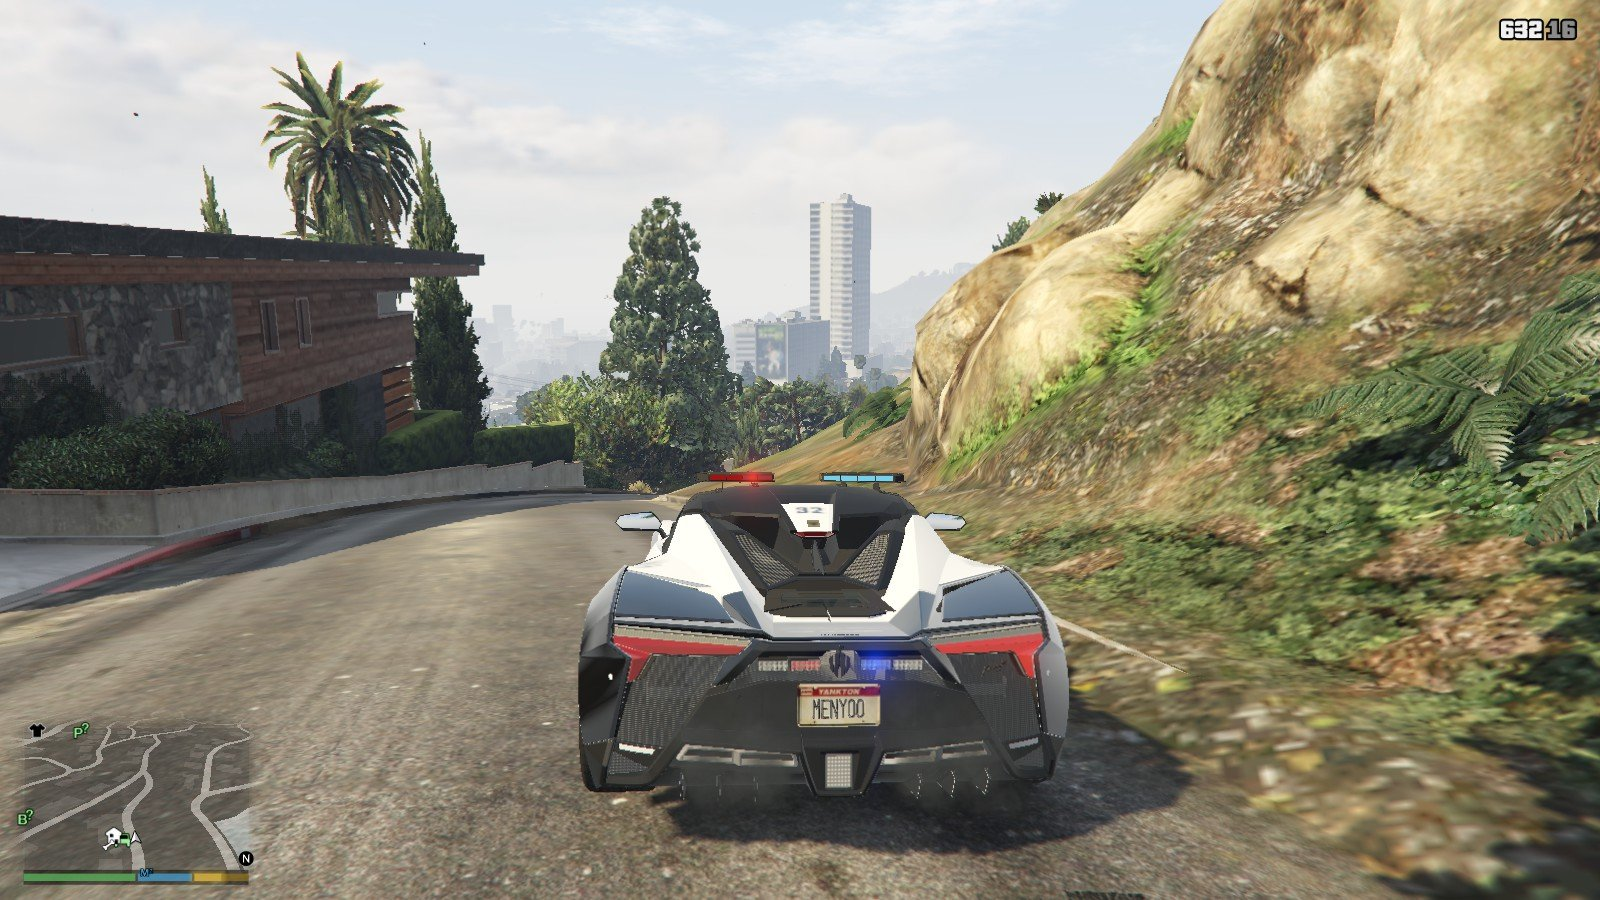 Fenyr Supersport Police Car Mod For GTA5 - 9Gta | GTA Mods